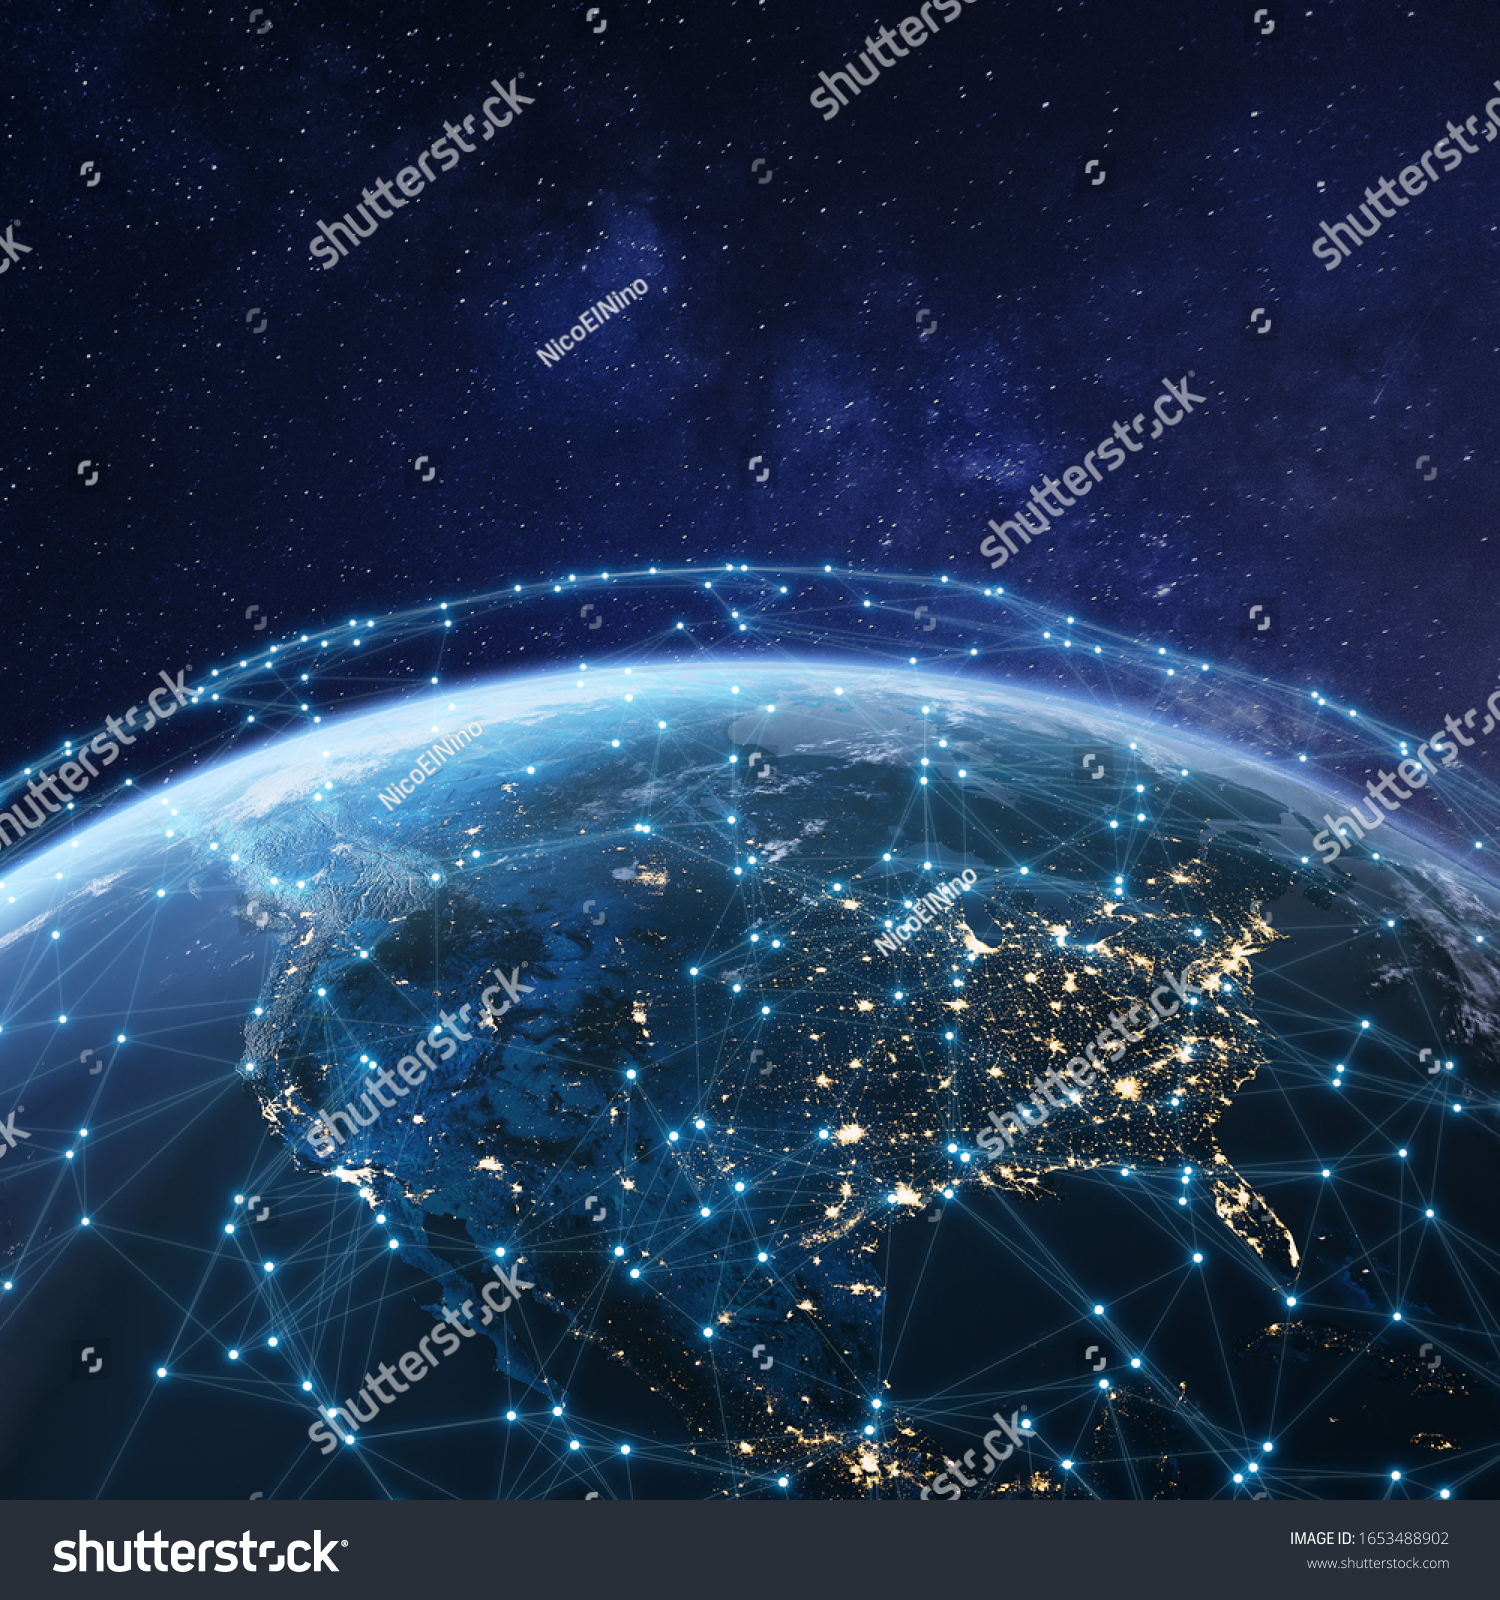 Telecommunication network above North America from space by night with city lights in USA, Canada and Mexico, satellite orbiting Planet Earth for Internet of Things IoT and blockchain technology #1653488902